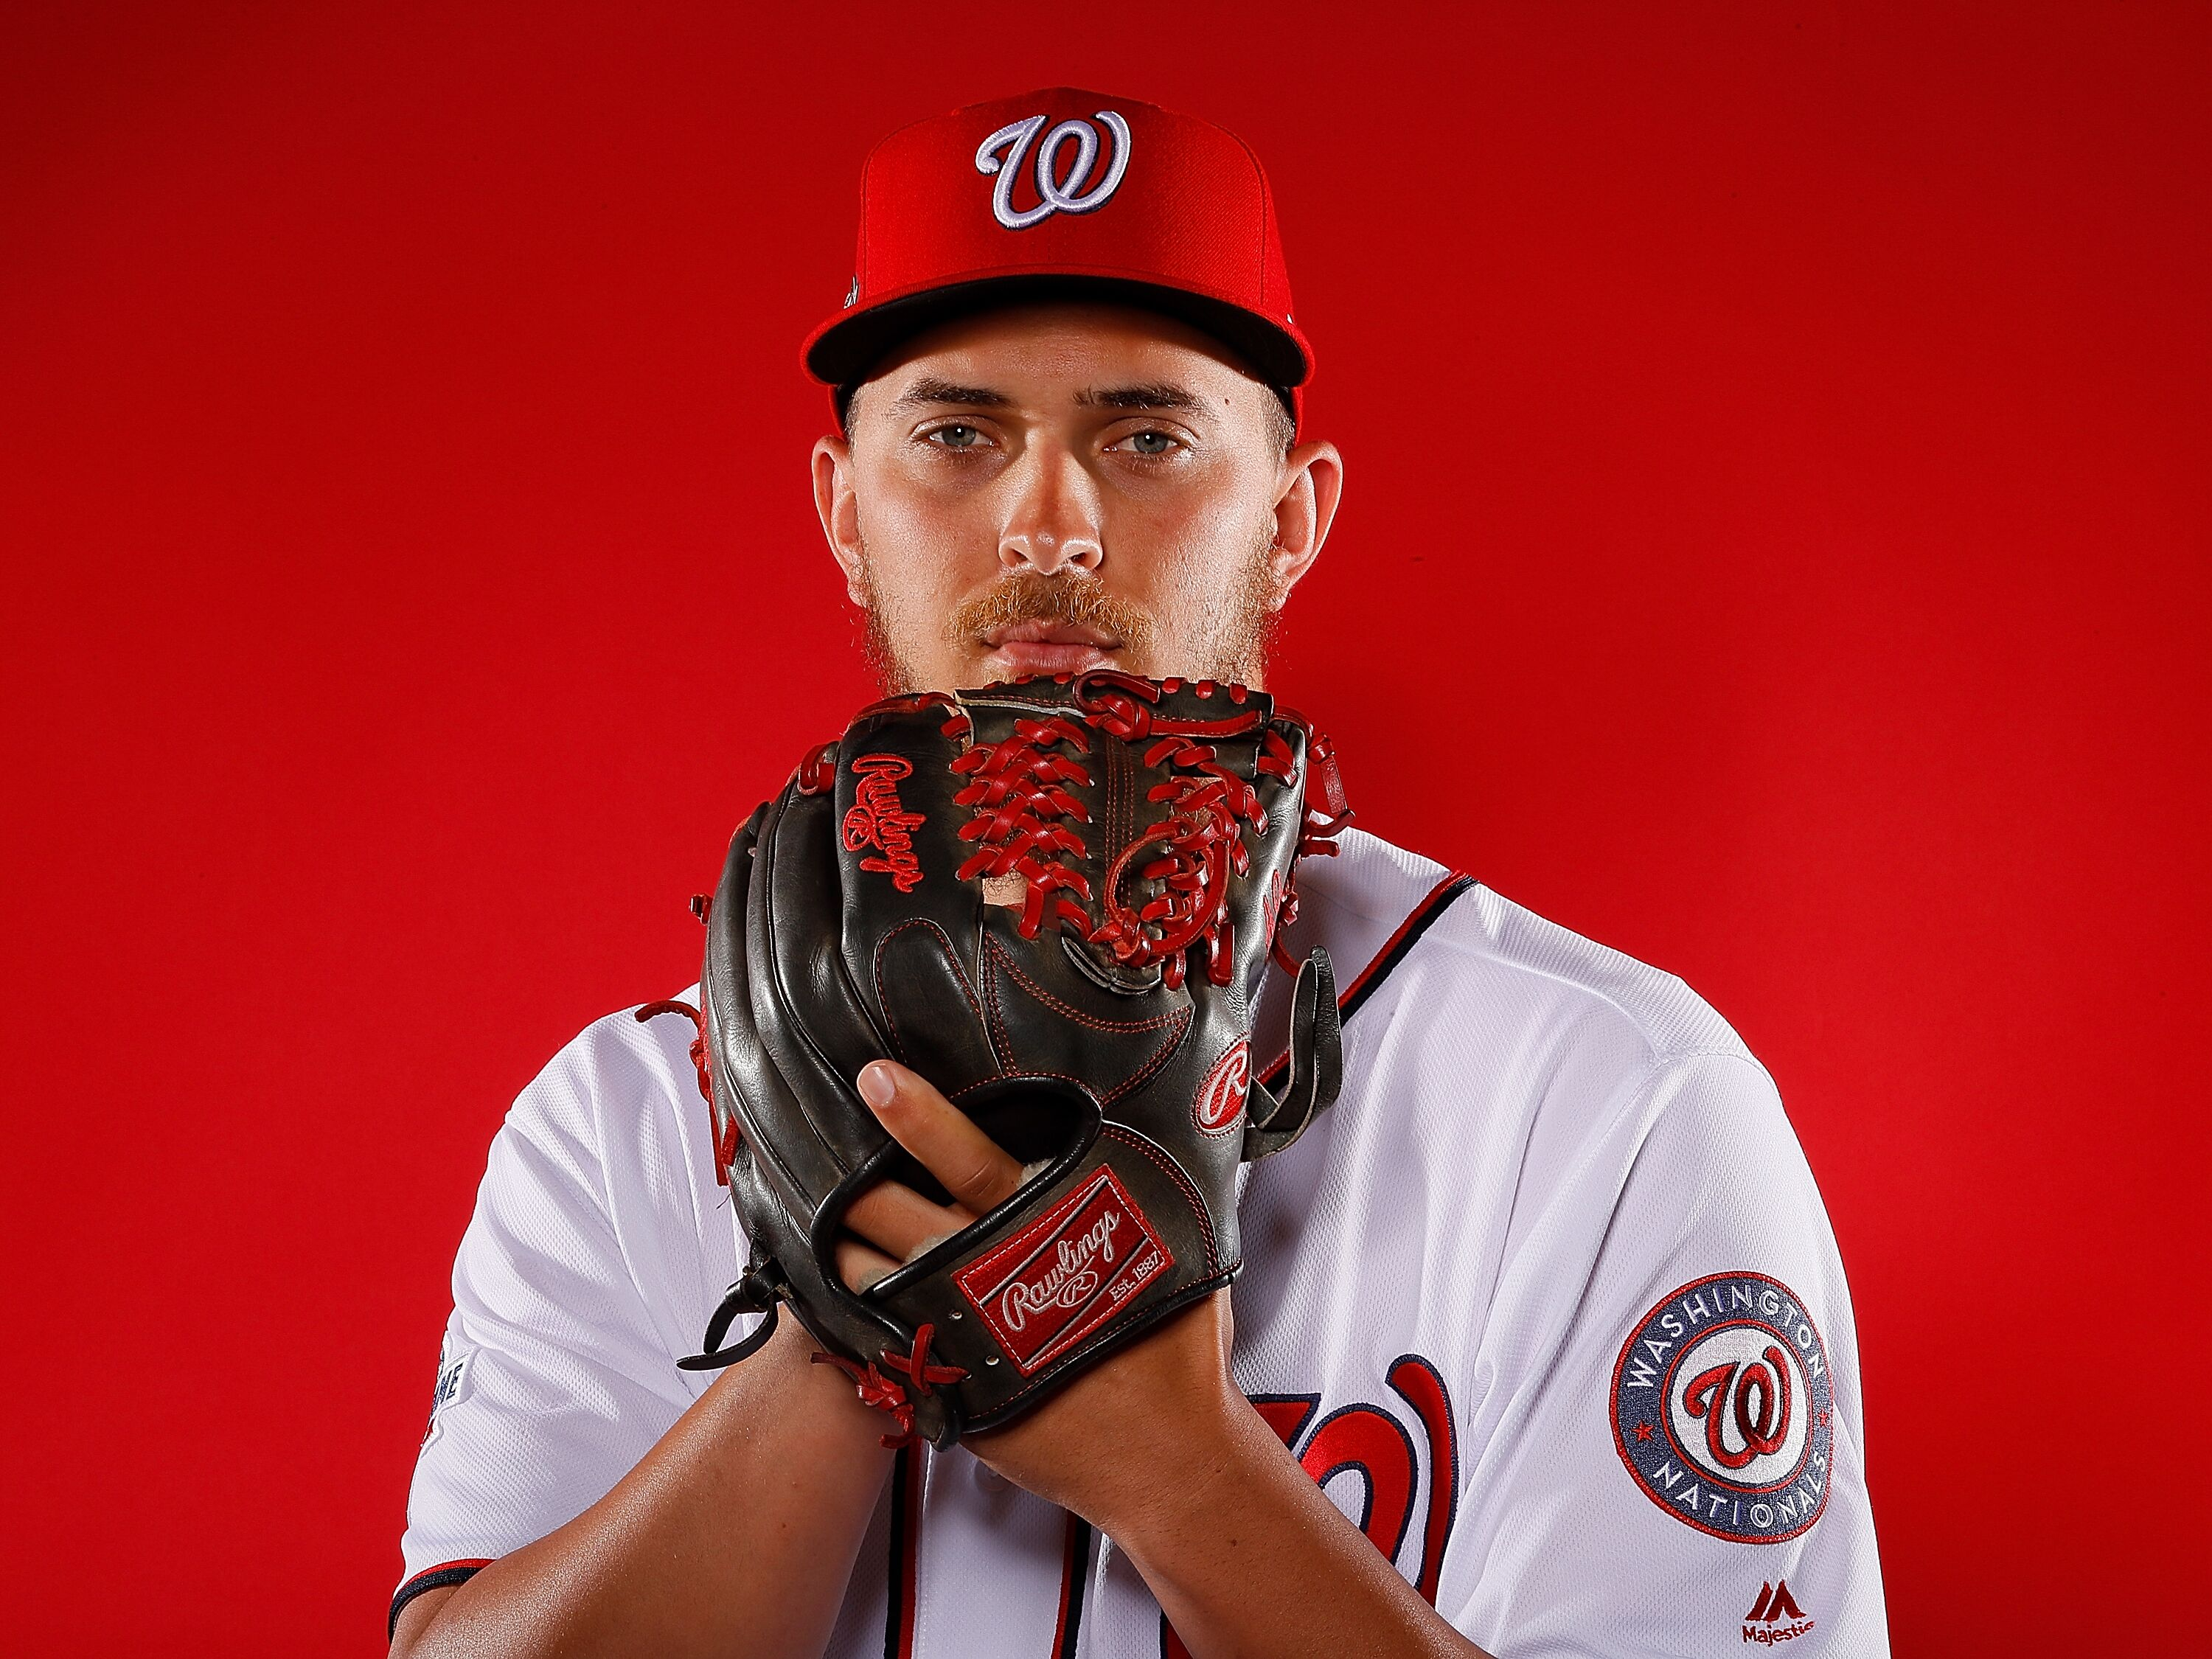 923138476-washington-nationals-photo-day.jpg